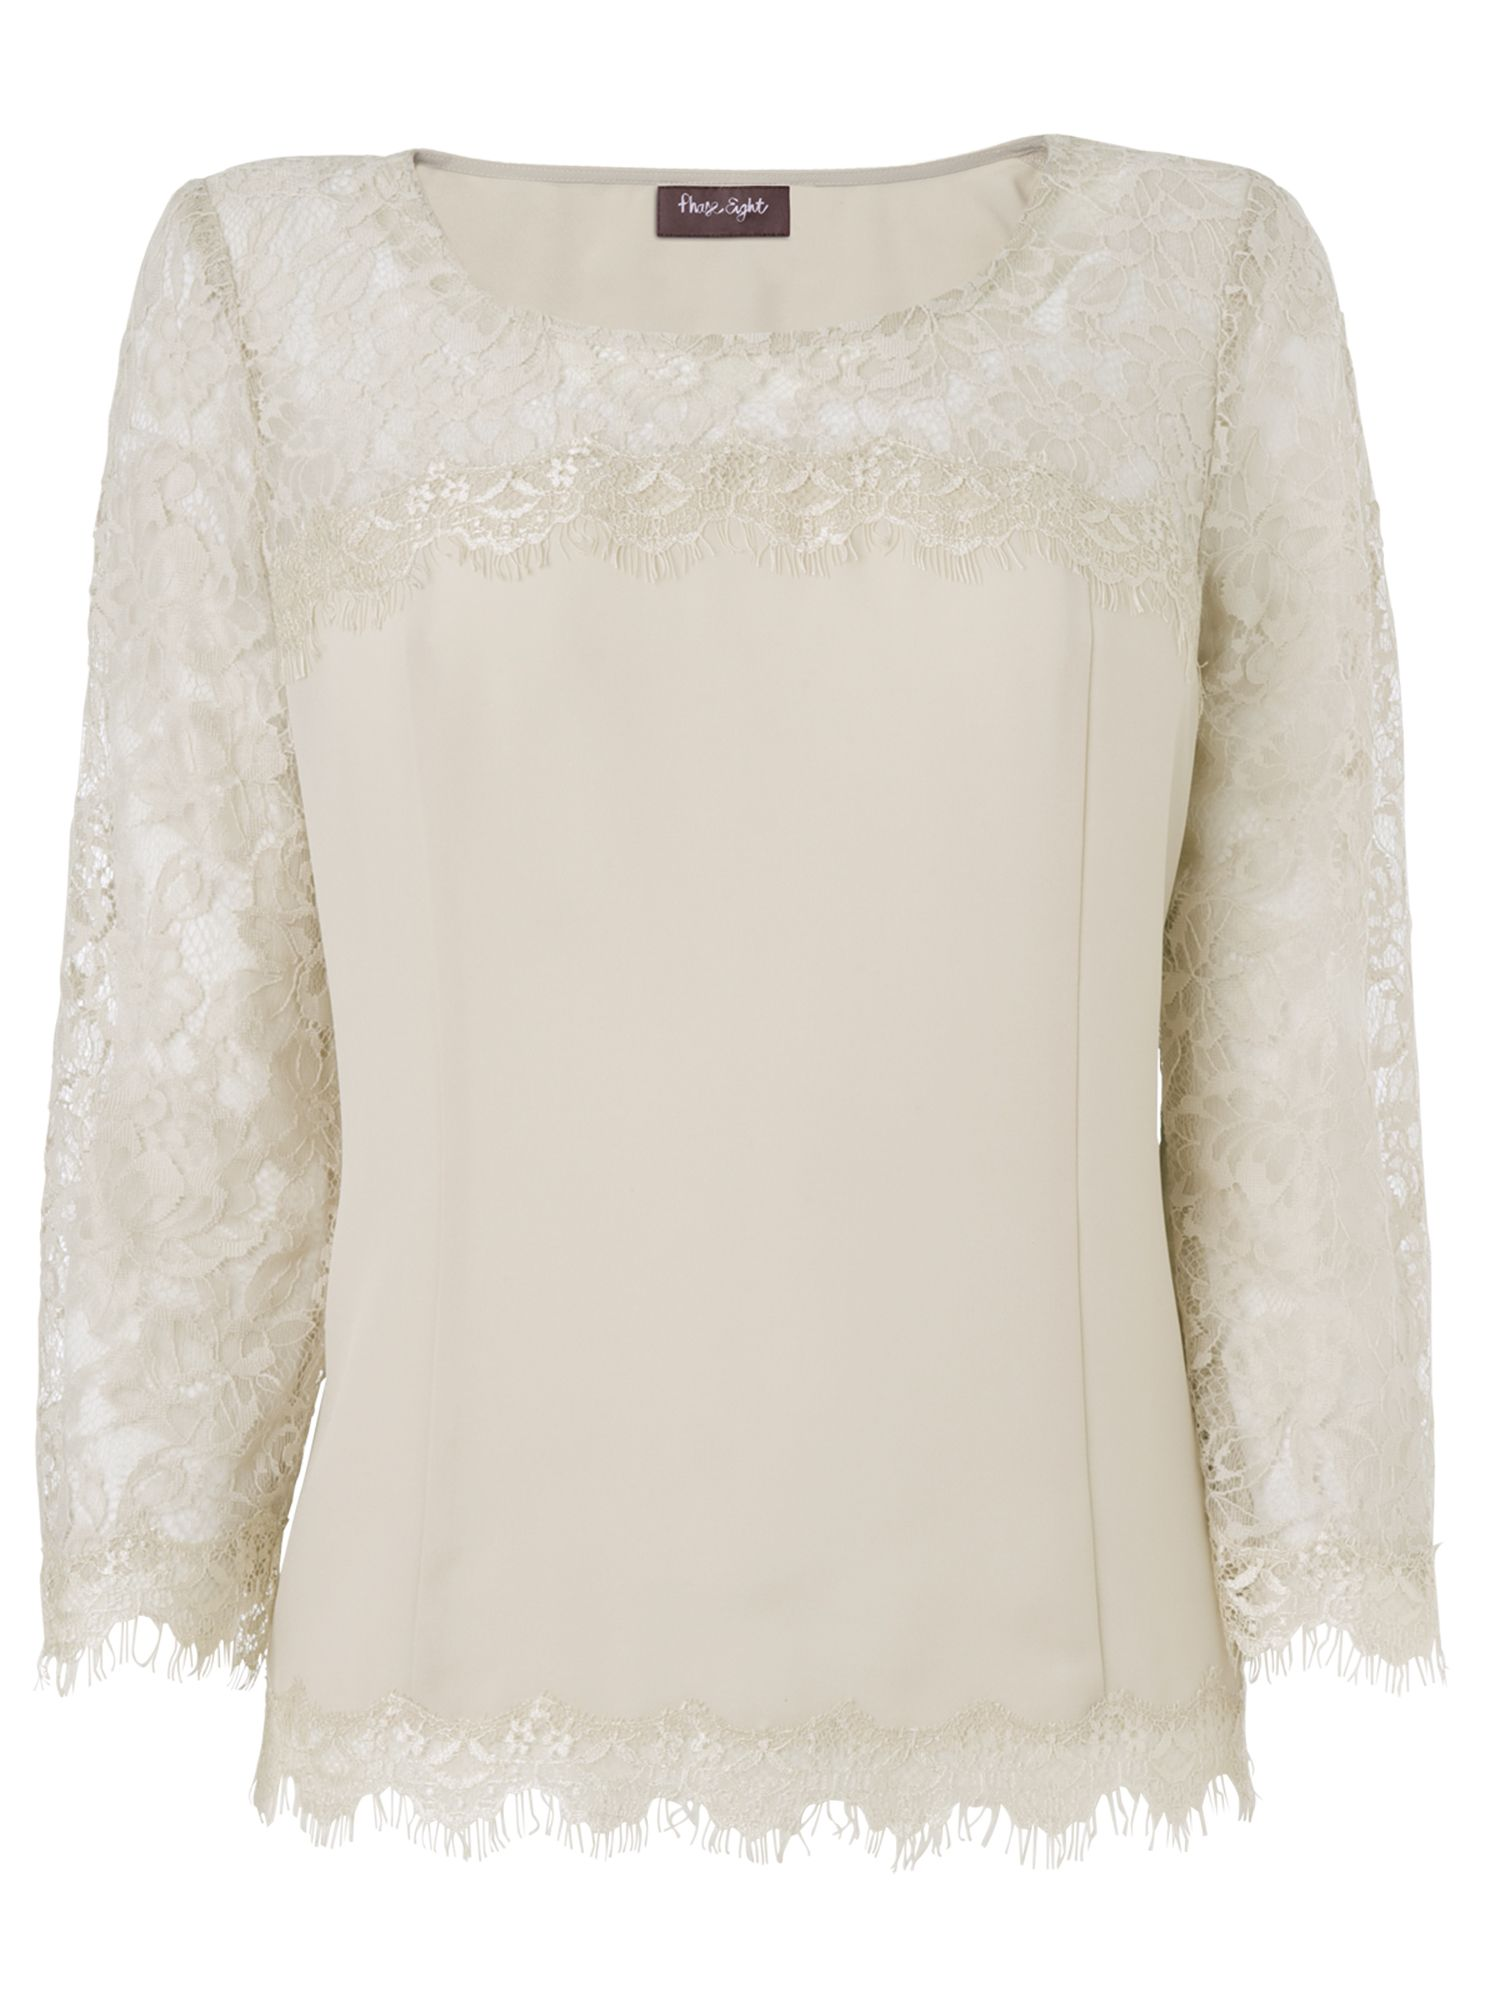 Jasmine lace sleeve blouse